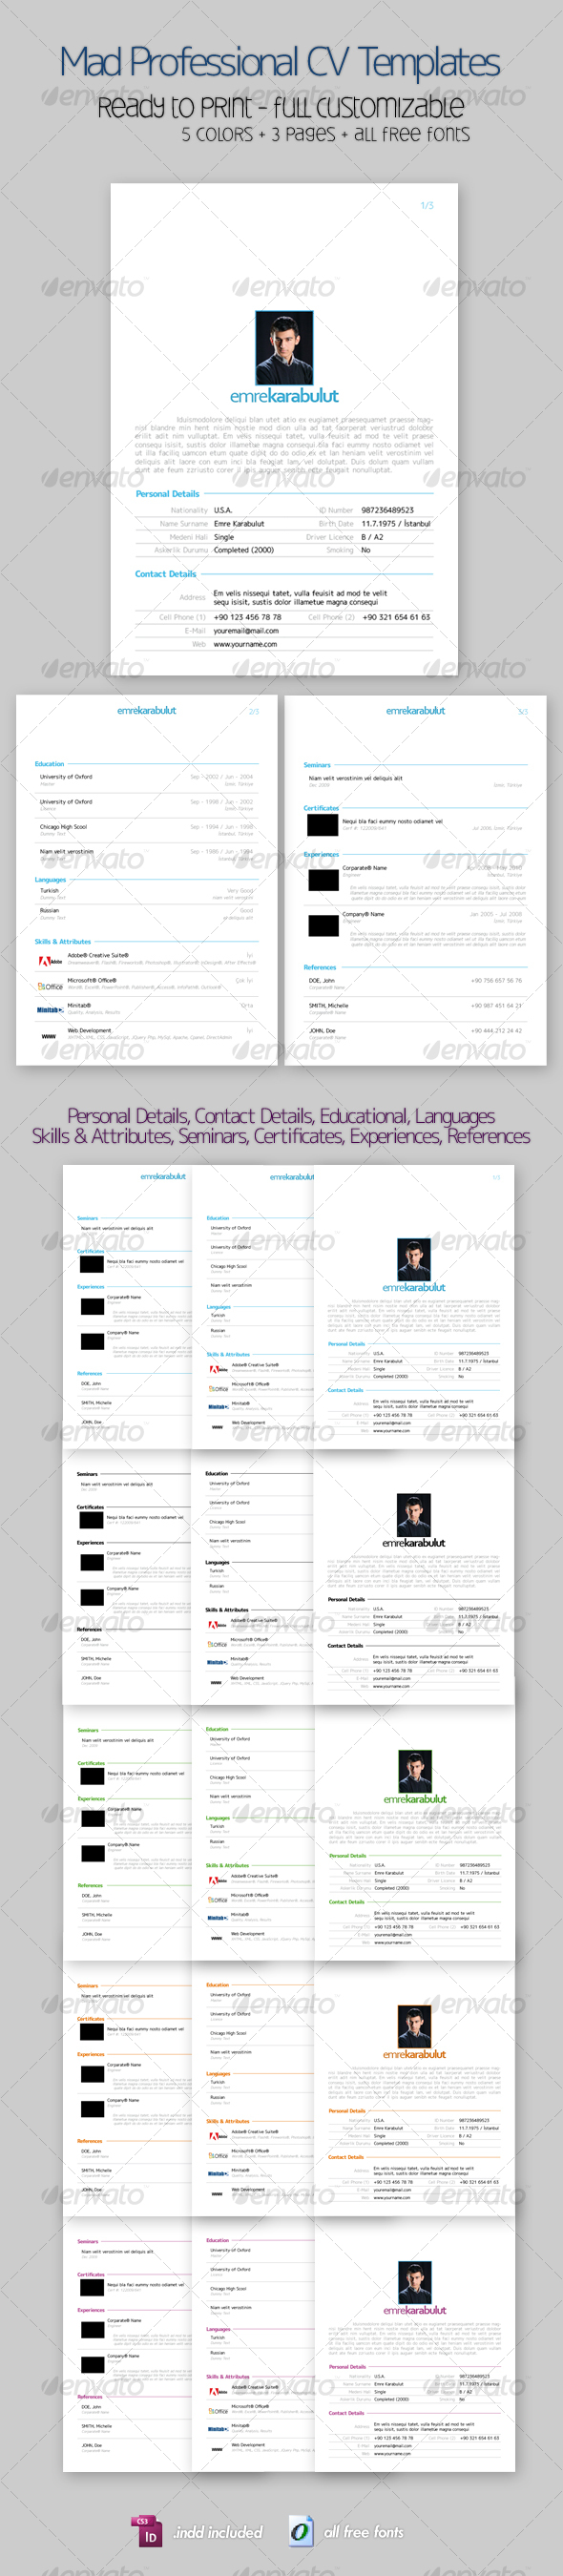 GraphicRiver Mad Professional Cv Template with 5 Color 3 Pages 85066